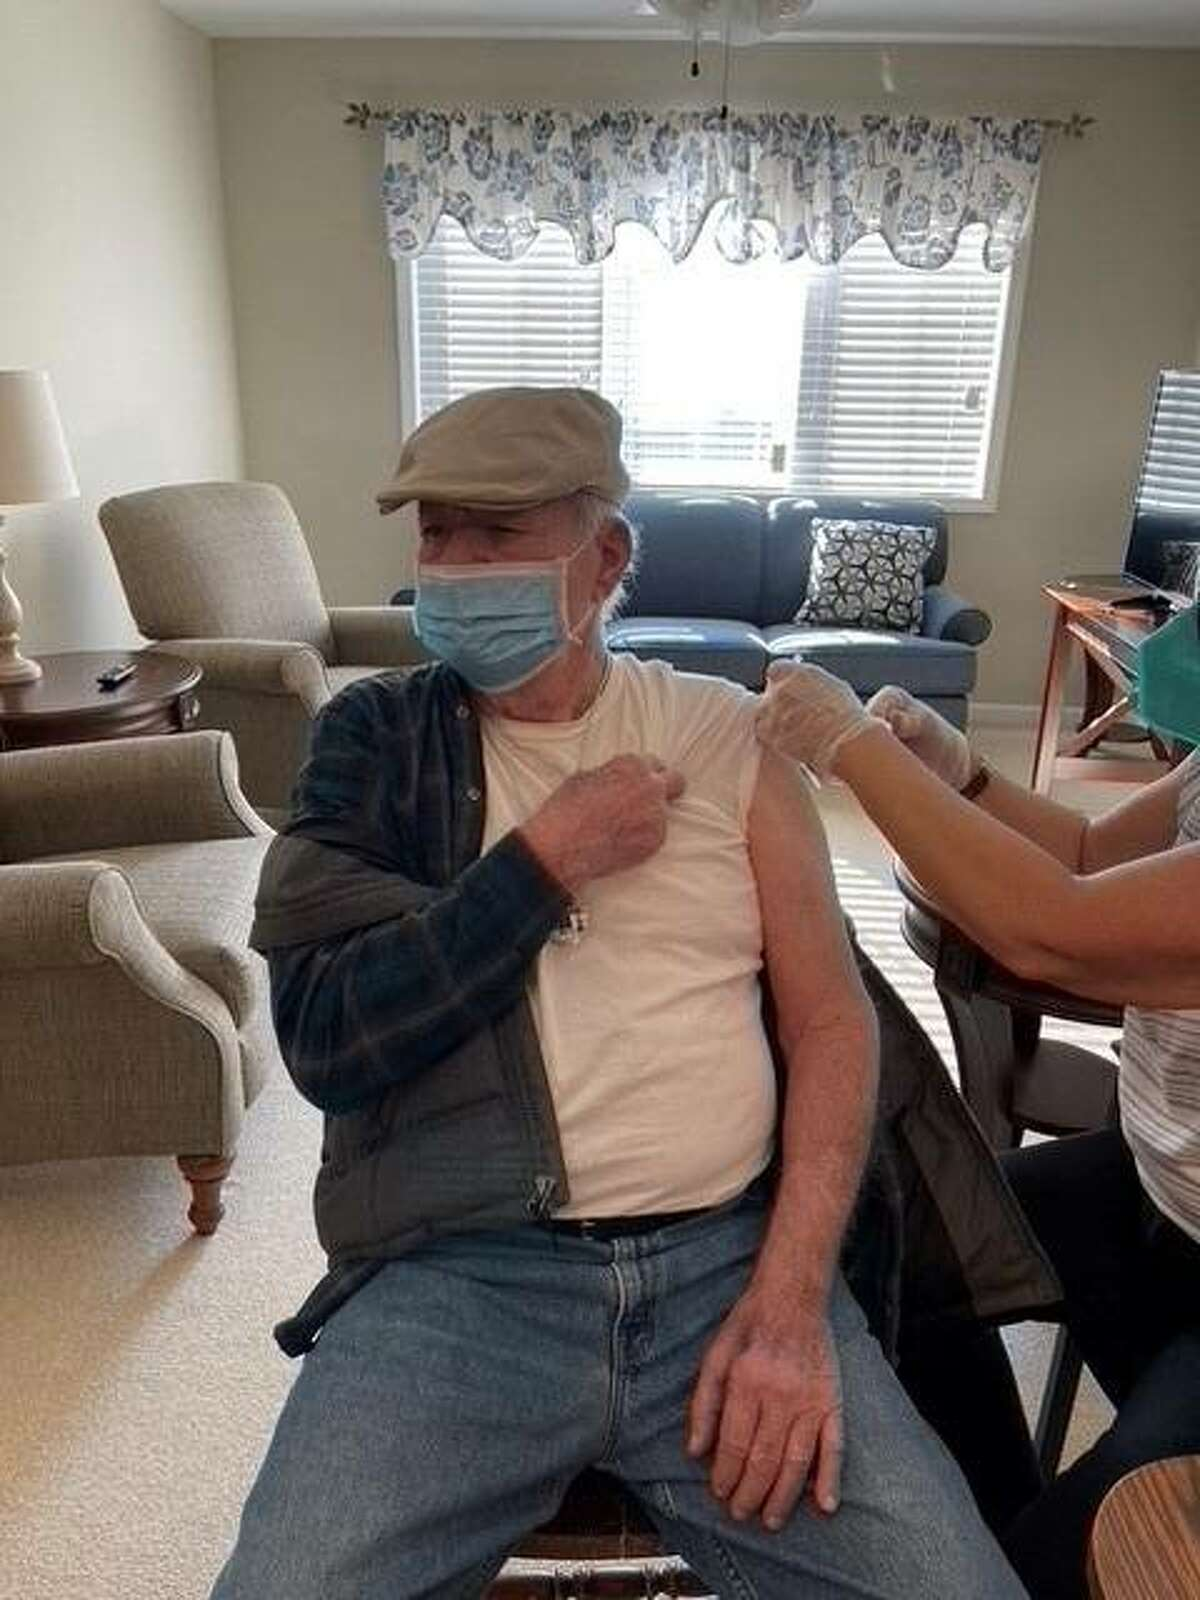 A resident of the Cedarhurst Senior Living in Bethalto on Friday receives his COVID-19 vaccination. Officials at the facility said most of the residents signed up for the vaccinations, which Cedarhurst built a disco-themed event around.